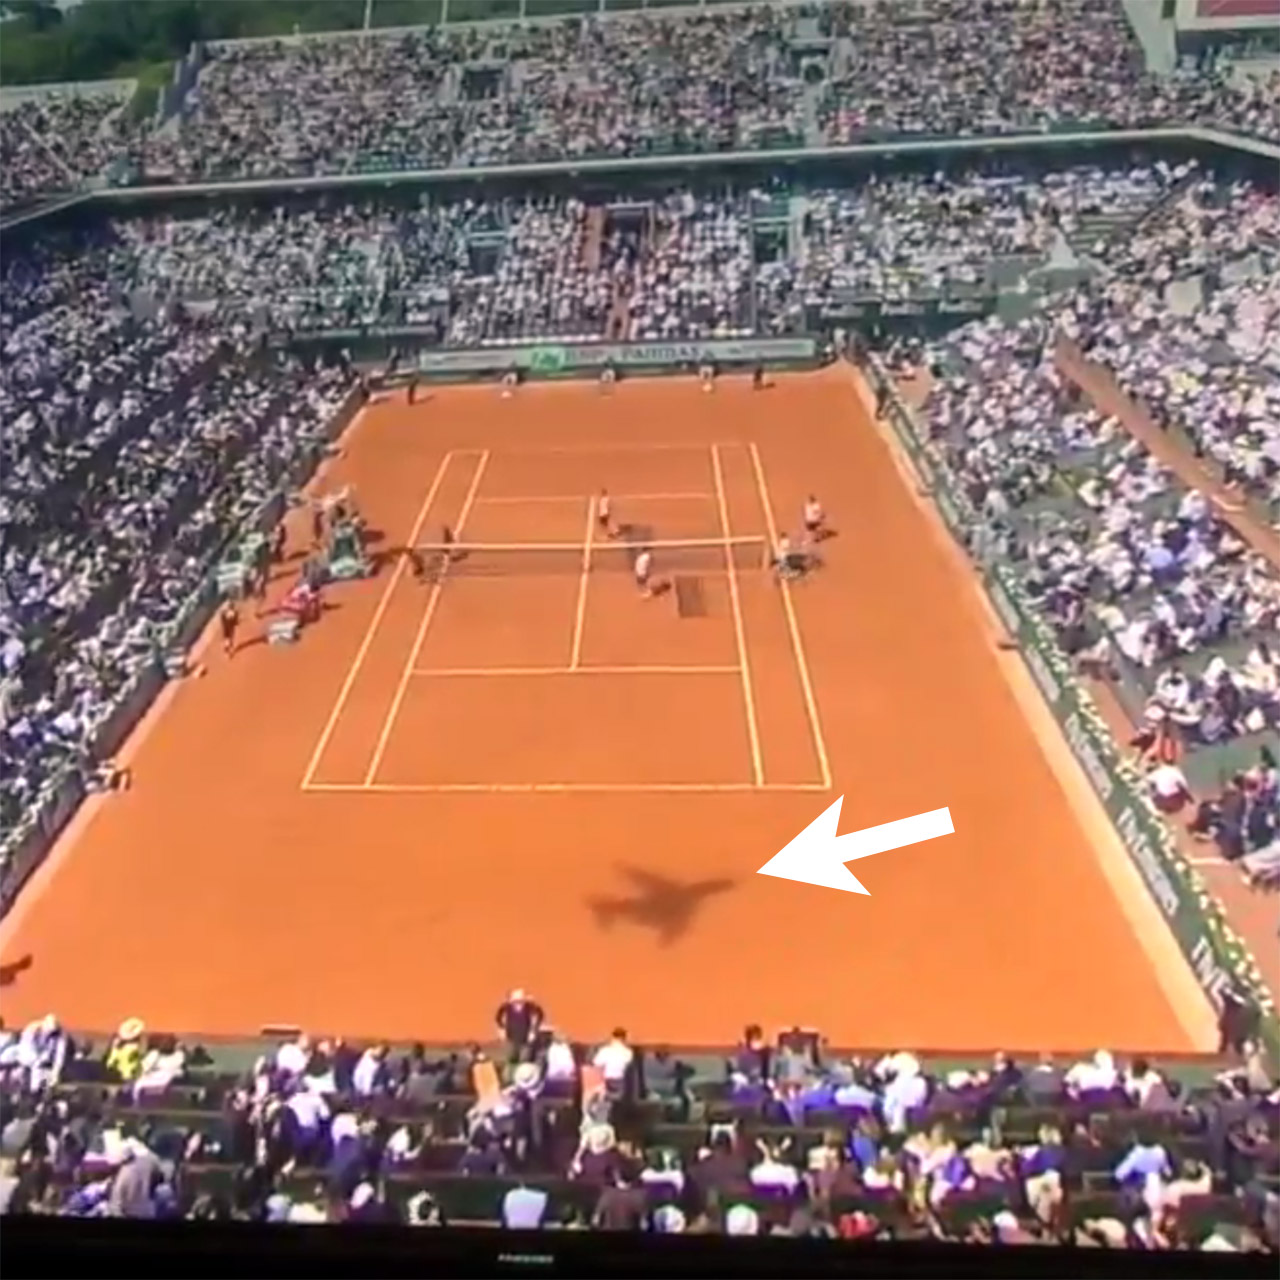 Backward flying plane appears during Serena Williams vs Sloane Stephens match at French Open